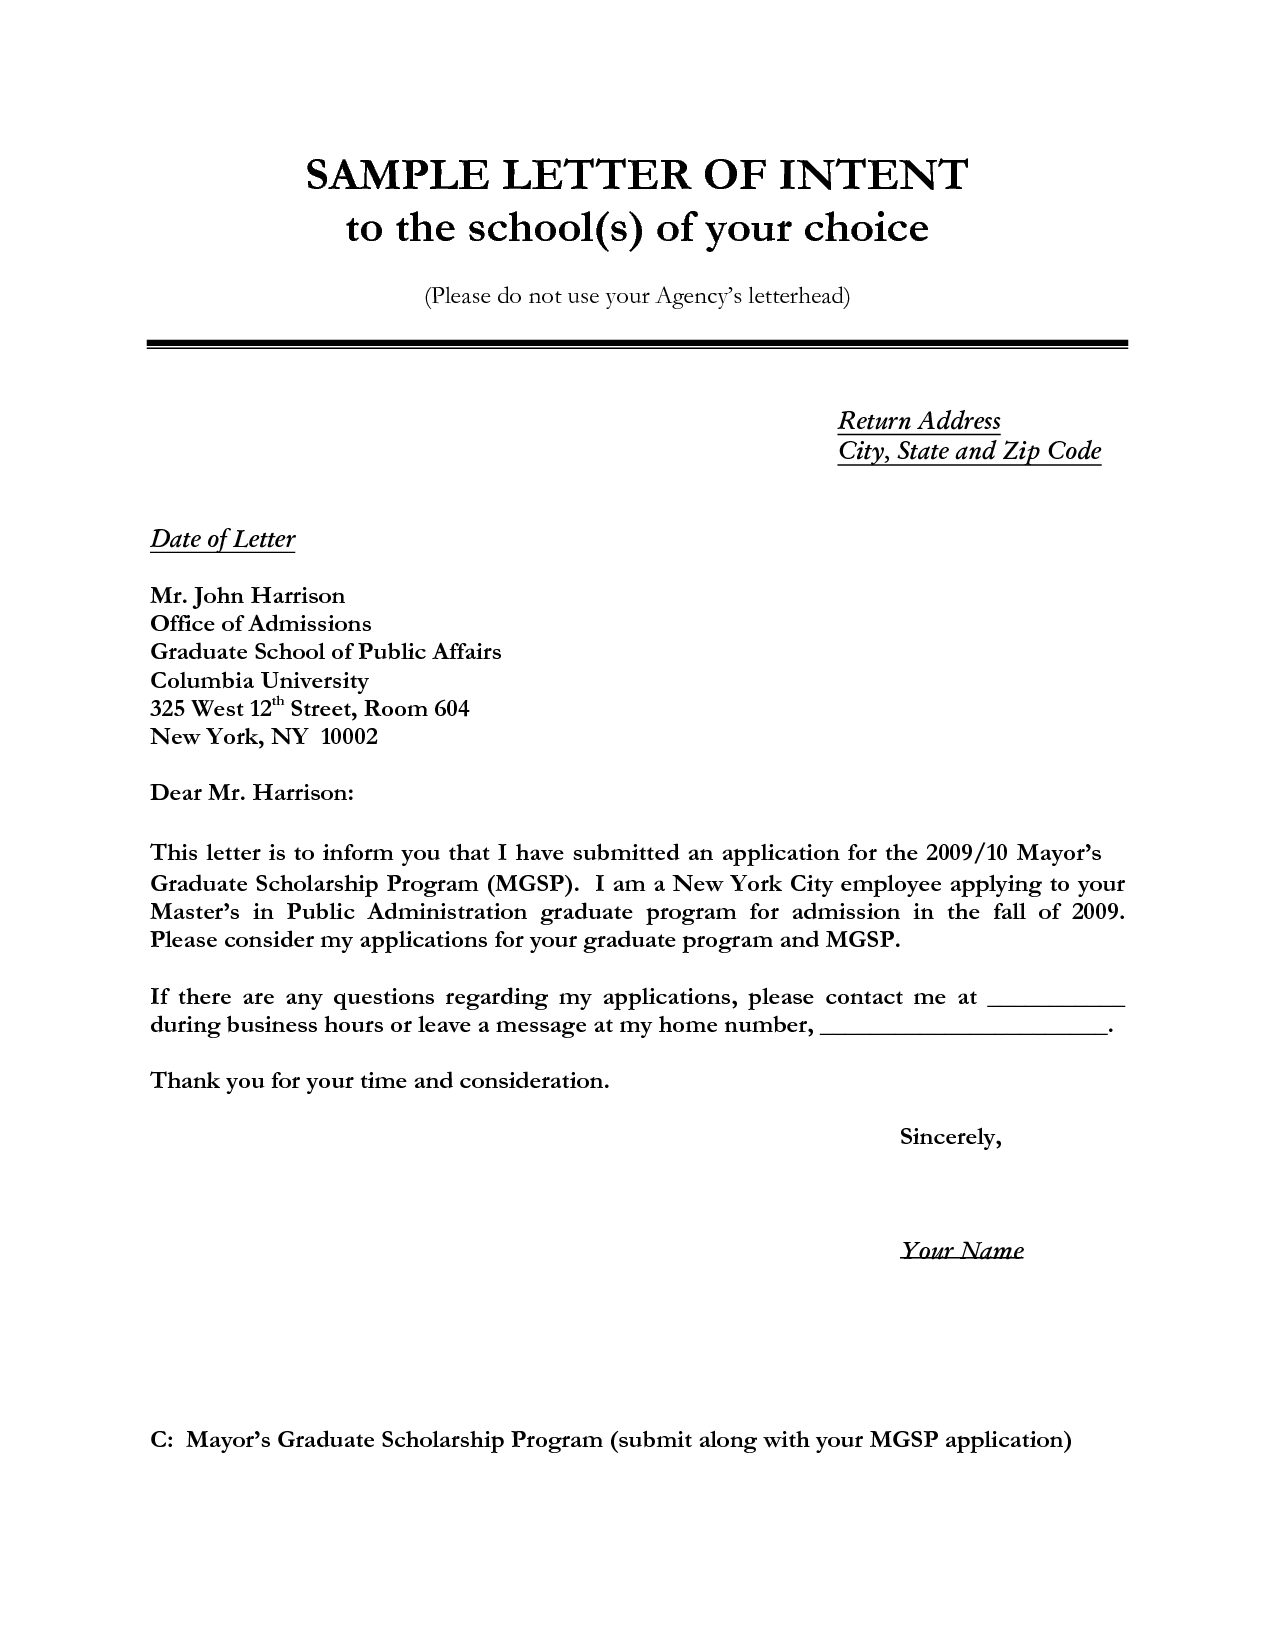 letter of intent template free Collection-Letter of intent sample 20-k